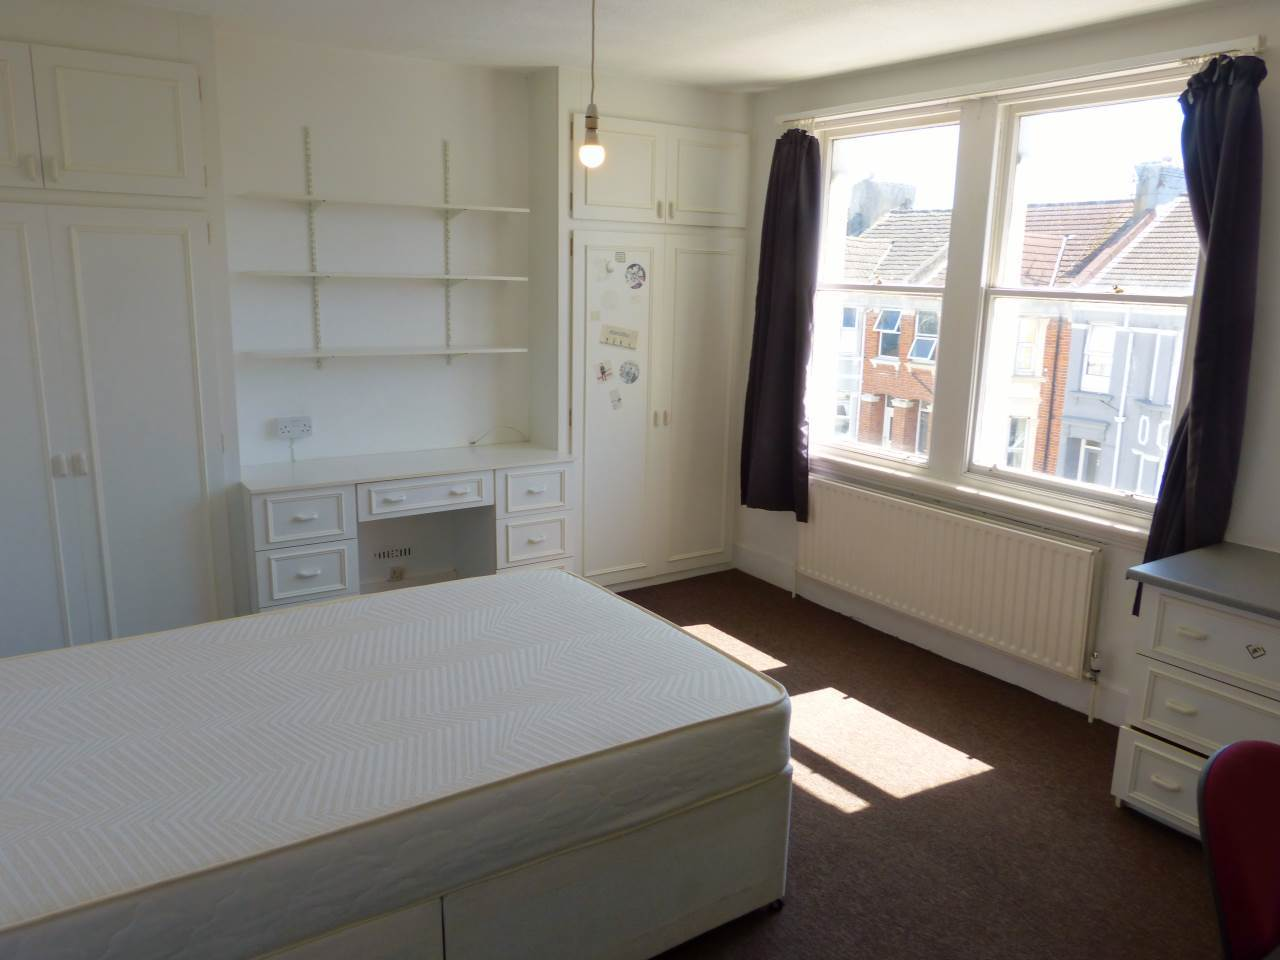 6 bed house to rent in Queens Park Road, BN2